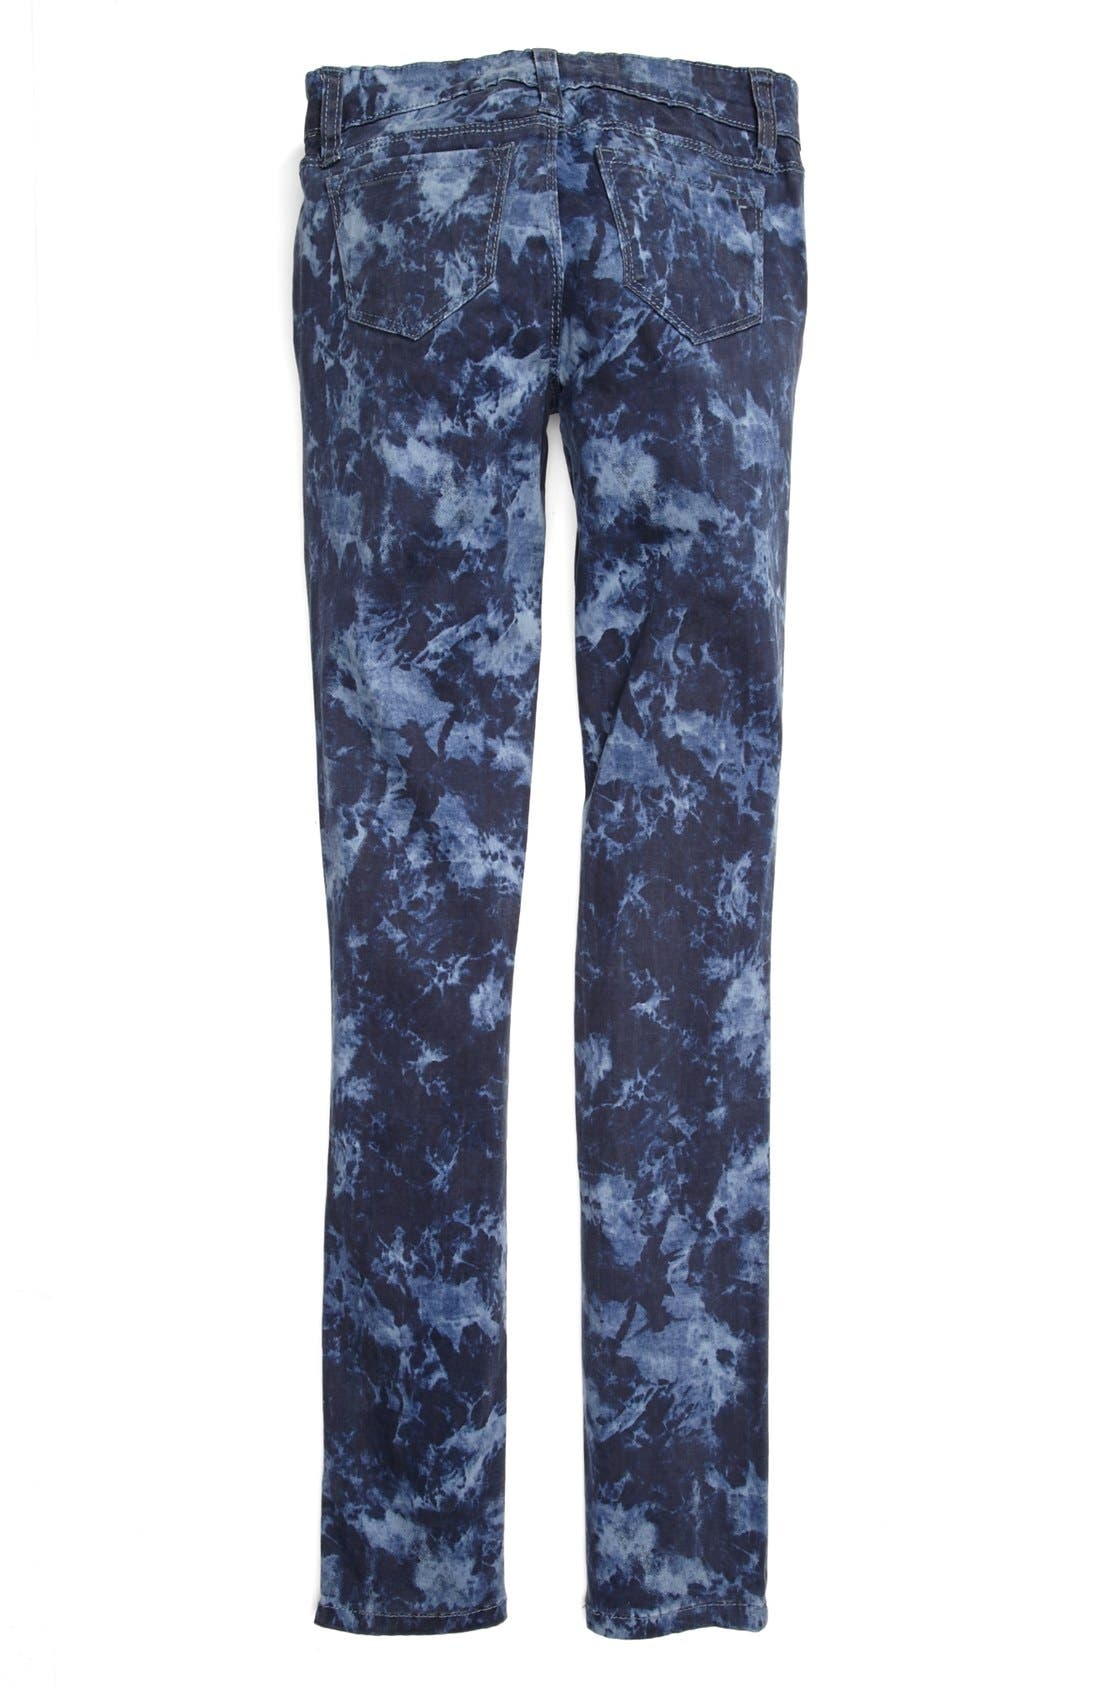 Alternate Image 1 Selected - Tractr Tie Dye Skinny Jeans (Big Girls)